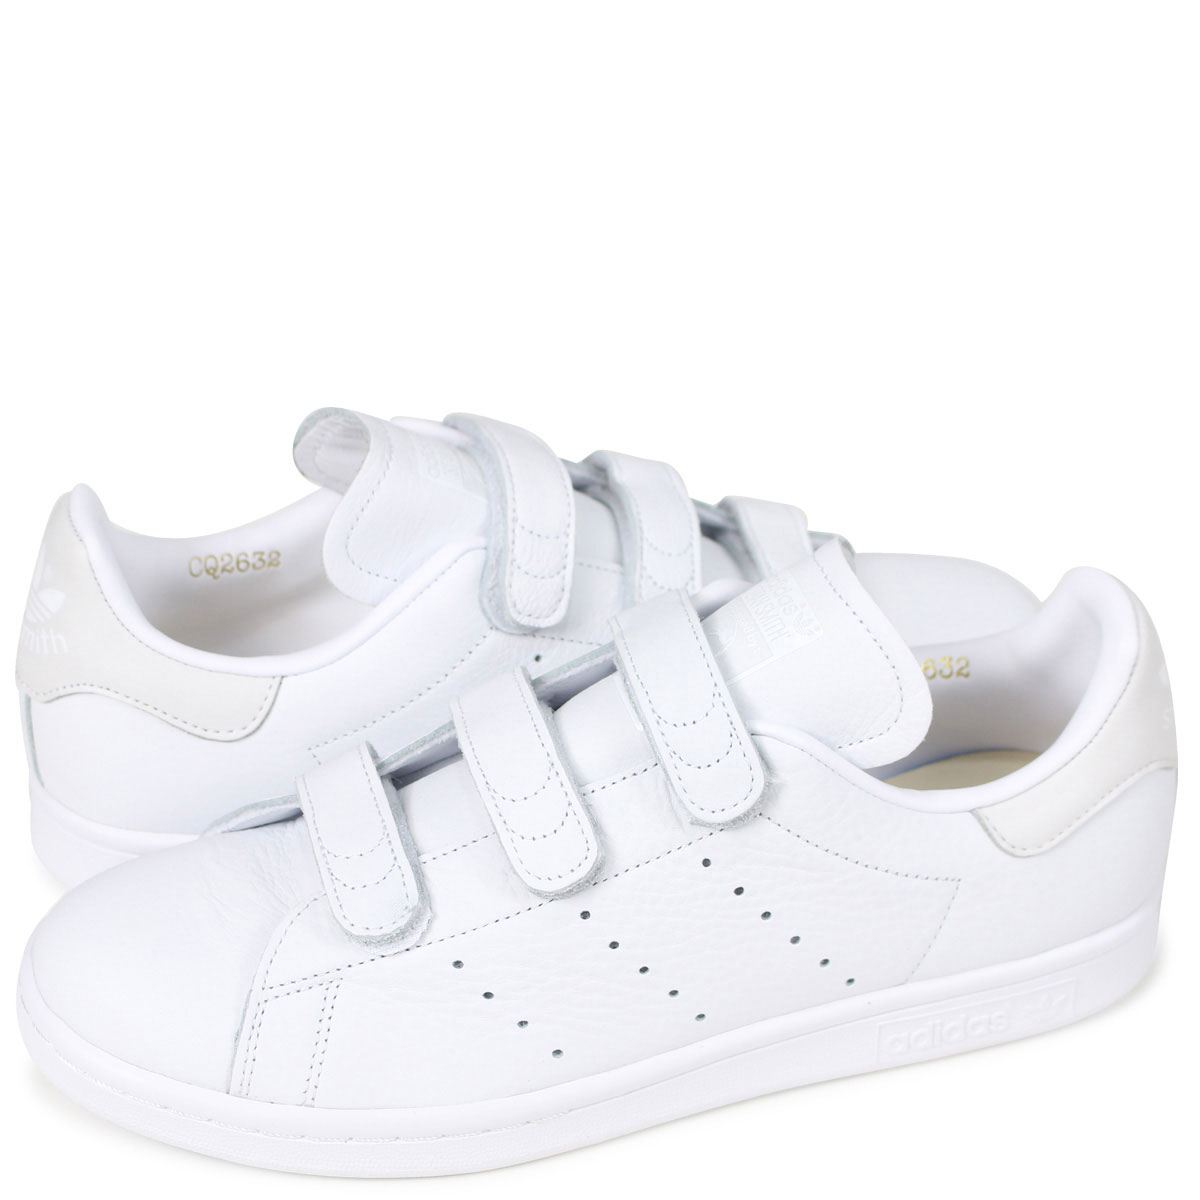 adidas Originals STAN SMITH CF Adidas Stan Smith Velcro sneakers men gap  Dis CQ2632 white originals